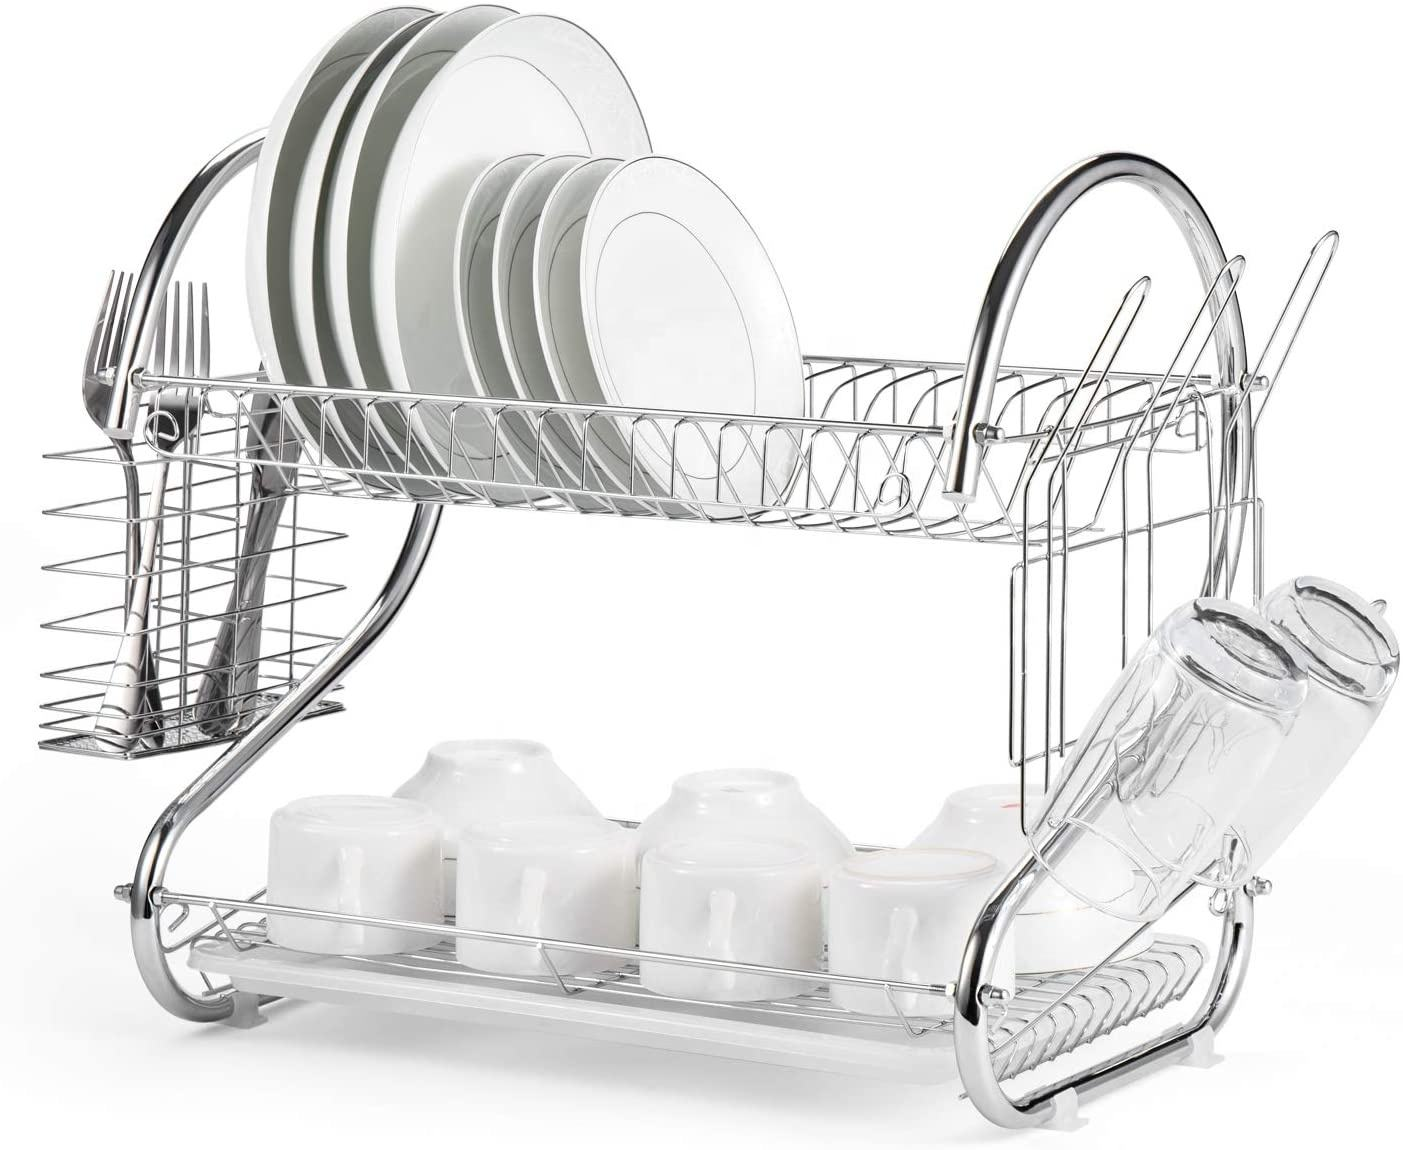 Dish Drying Rack, 2 Tier Dish Rack with Utensil Holder, Cup Holder and Dish Drainer for Kitchen Counter Top, Chrome